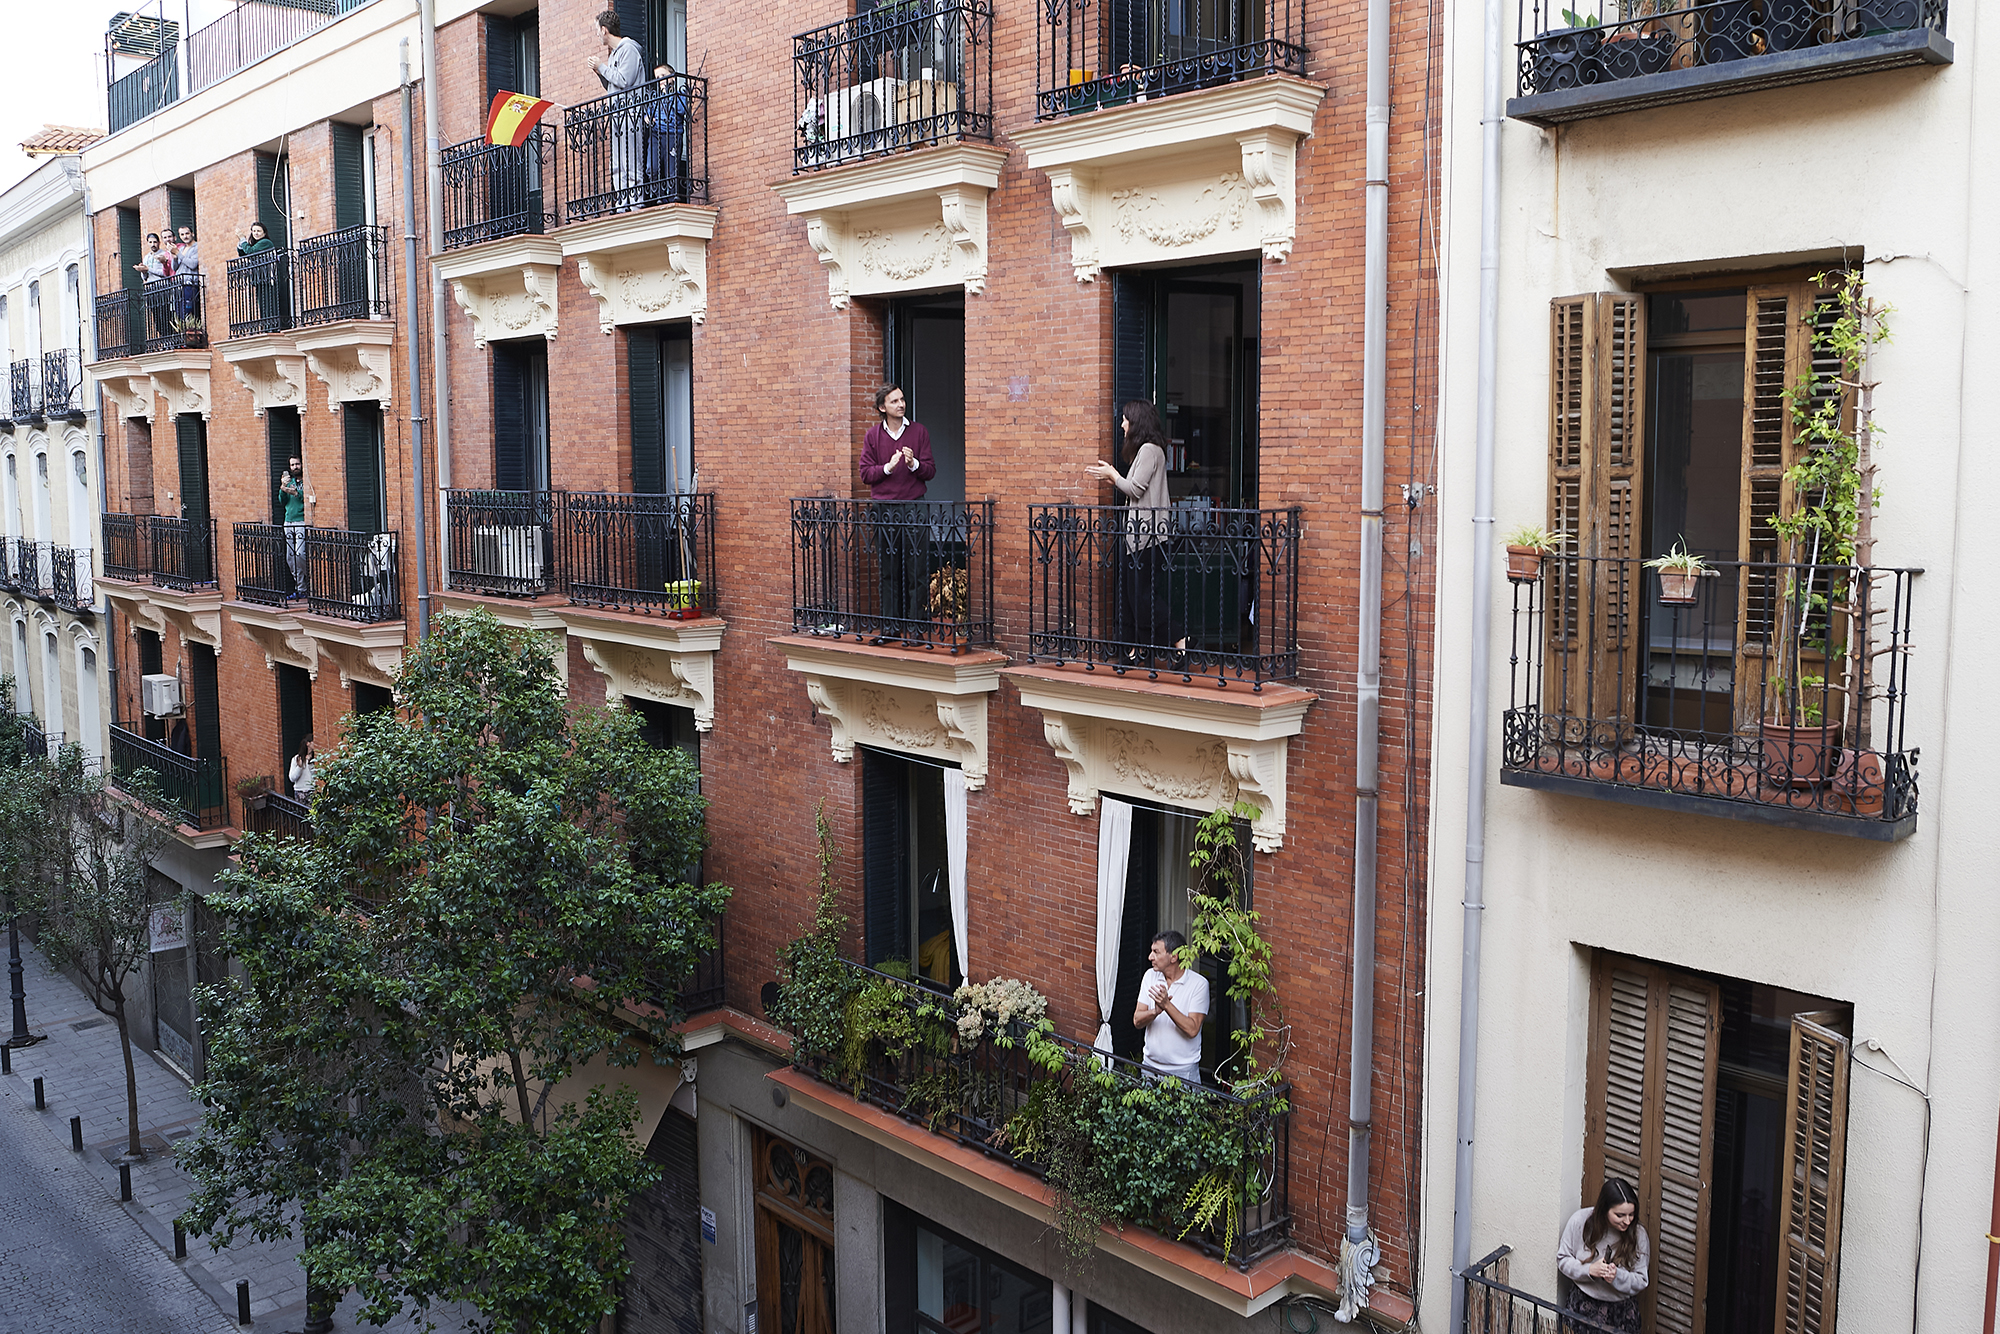 People on their balconies applaud to pay tribute to healthcare workers struggling to fight the coronavirus pandemic on Saturday, April 18, in Madrid.